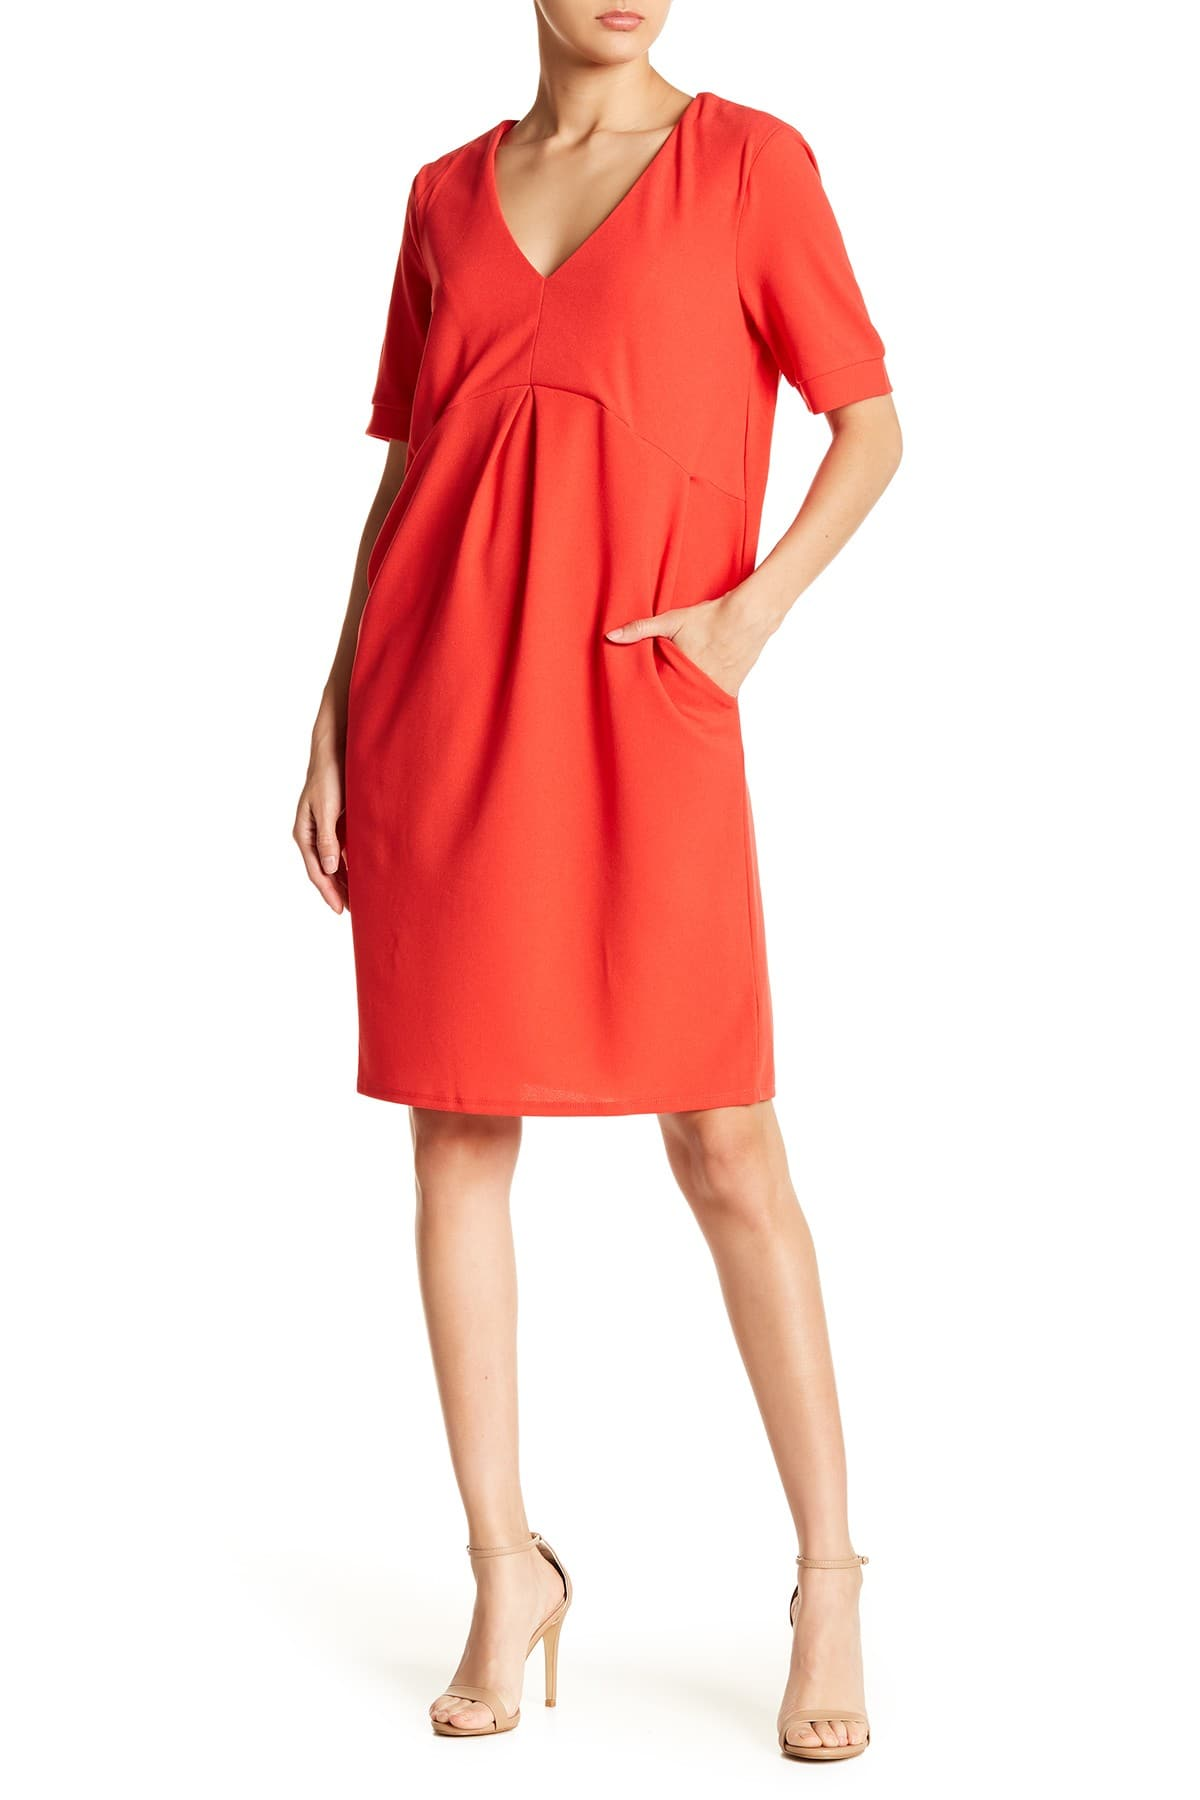 SUPERFOXX Ponte Shift Dress $29.97